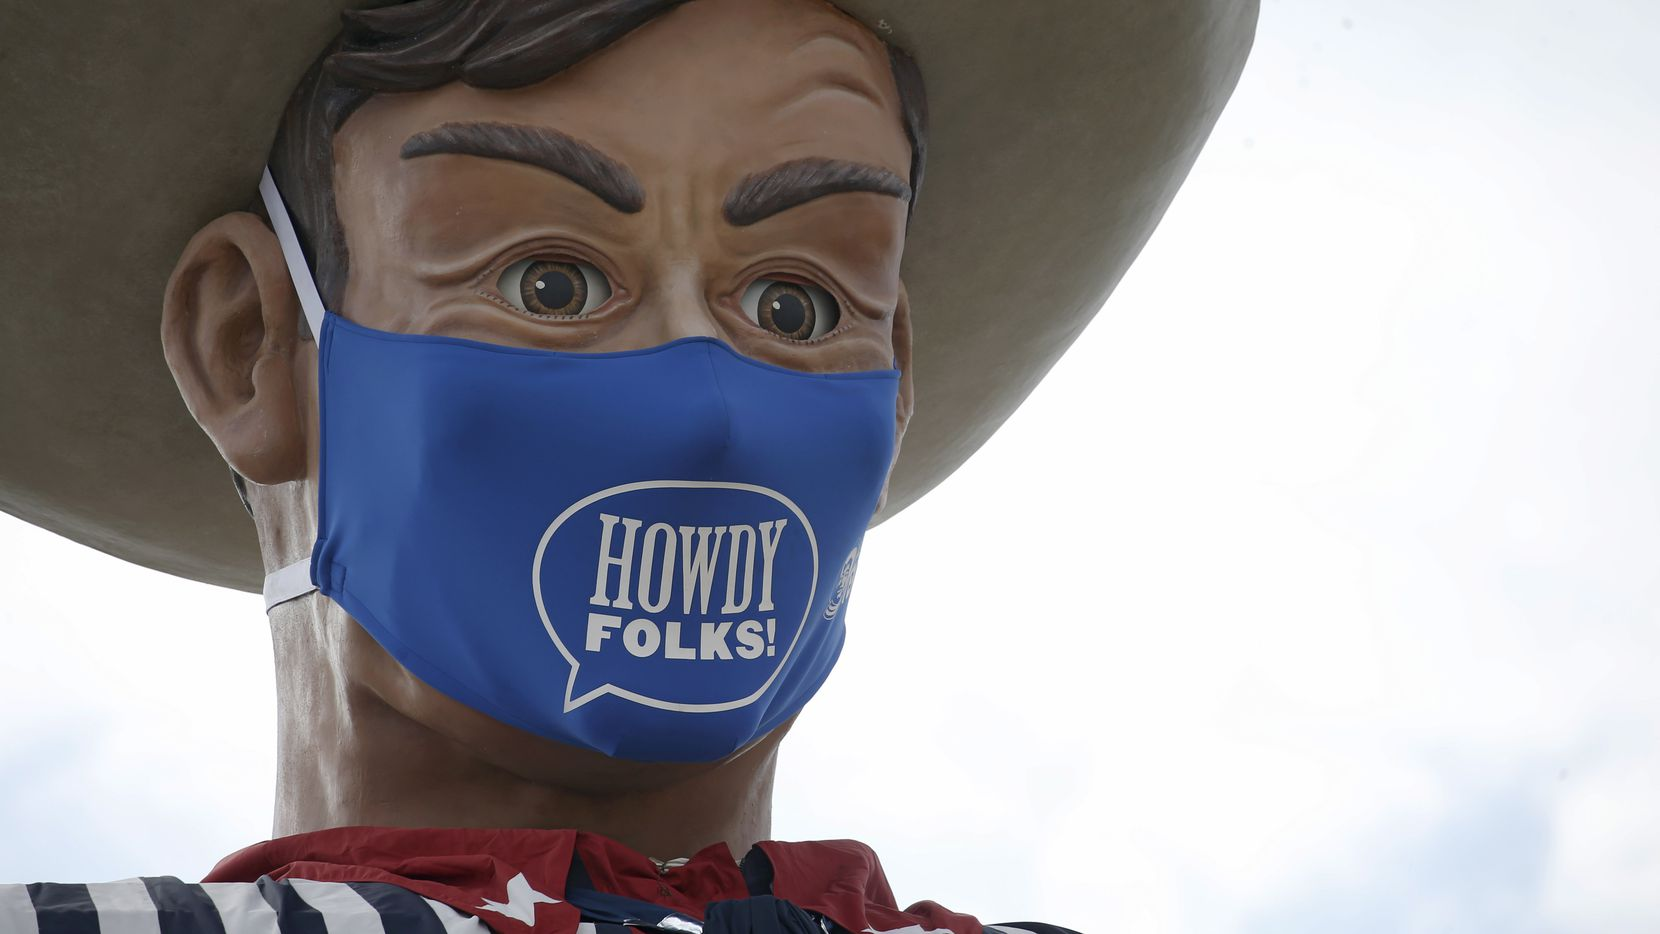 """Big Tex sports a """"Howdy, folks!"""" face mask at Fair Park in Dallas on Wednesday, Sept. 16, 2020. The mask is 84 inches by 45 inches, or roughly 7 feet by 4 feet. The State Fair of Texas has been cancelled this year due to the global pandemic."""